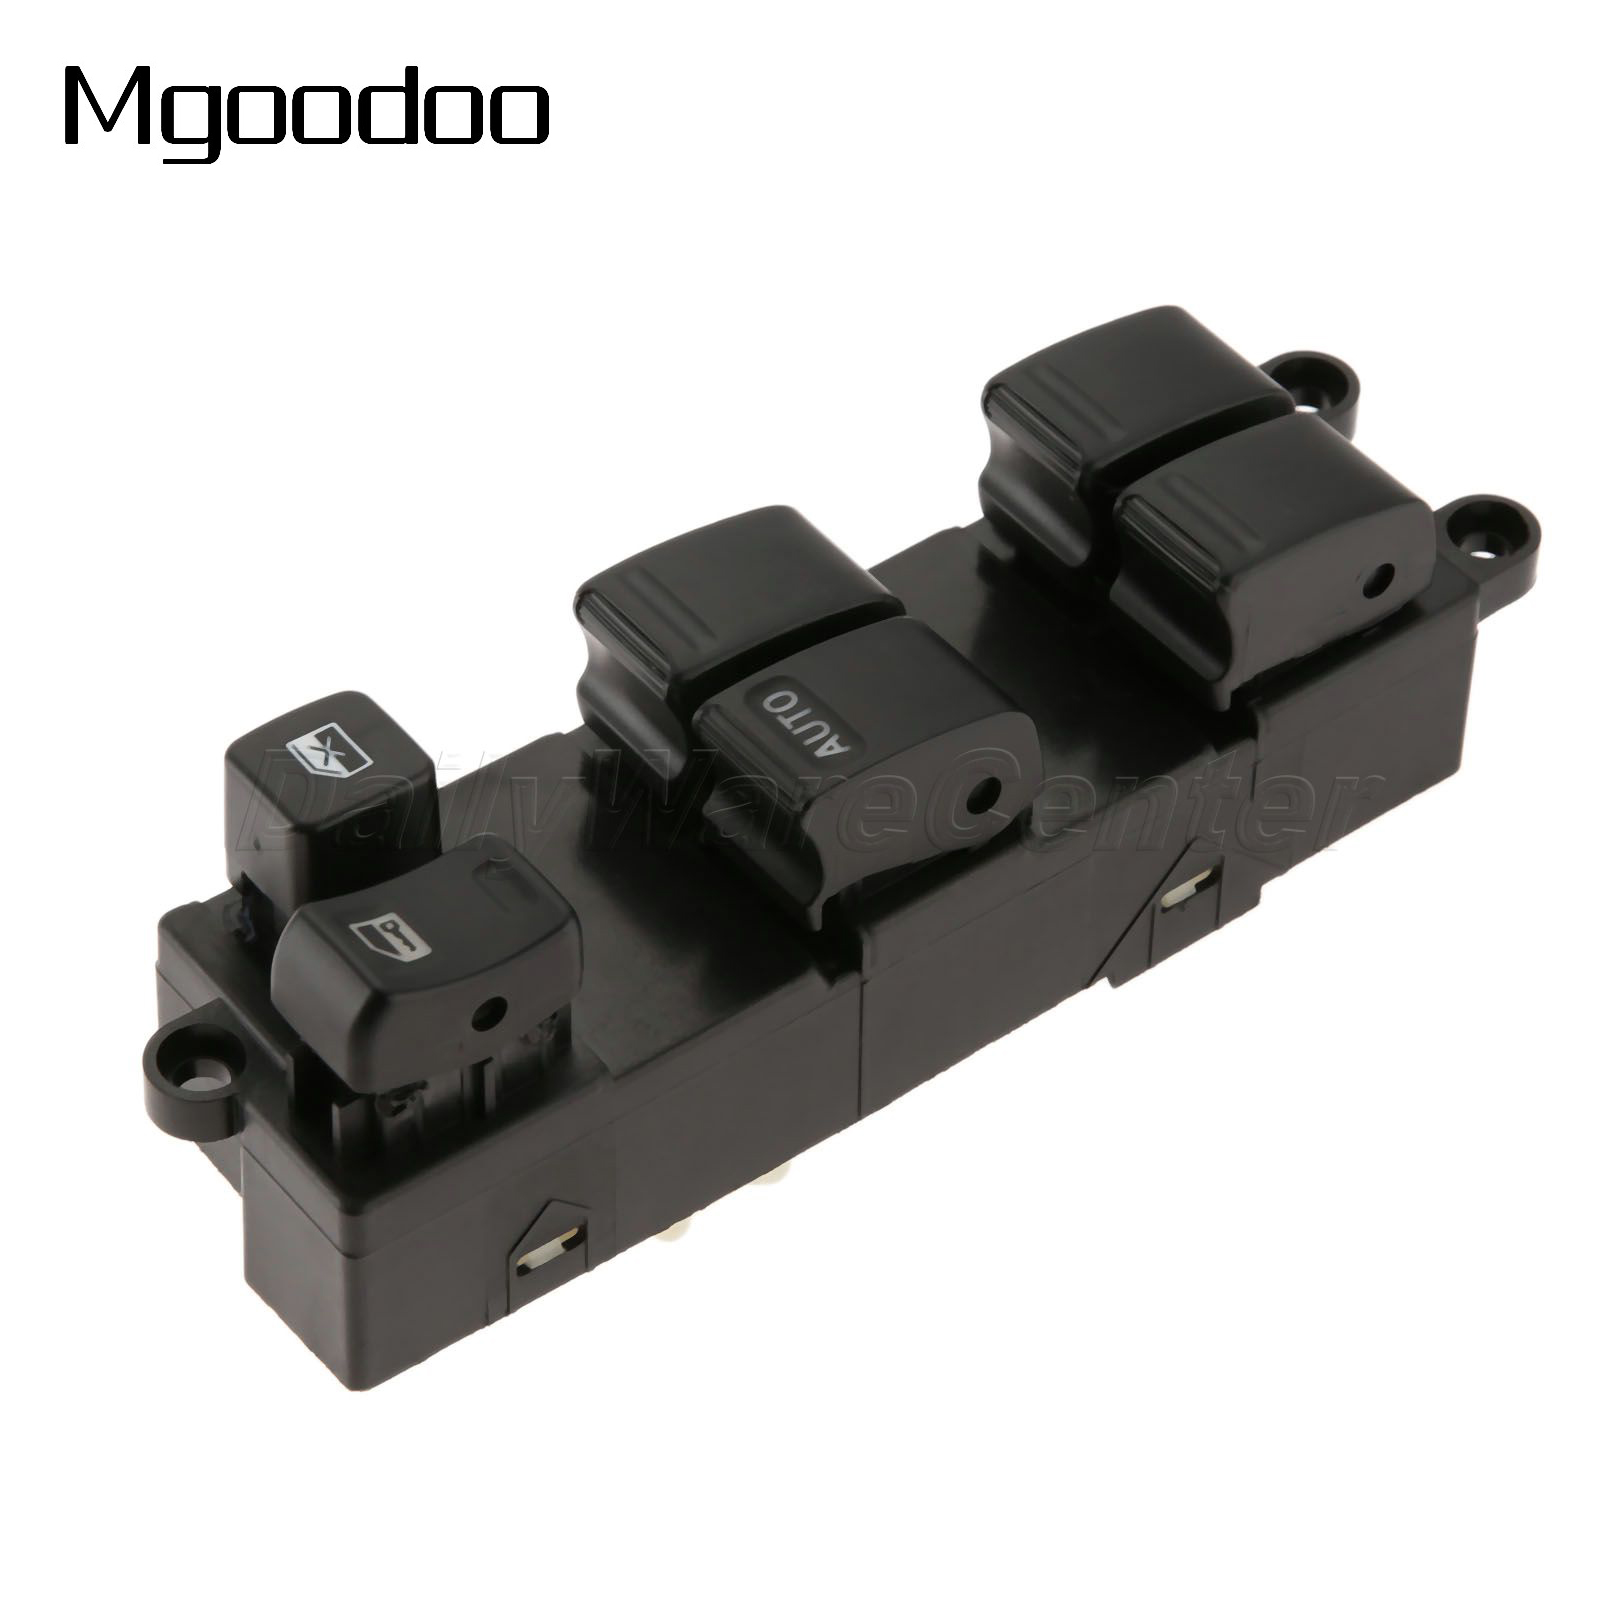 New electric power window master switch 25401 4y100 for 2000 nissan quest power window switch